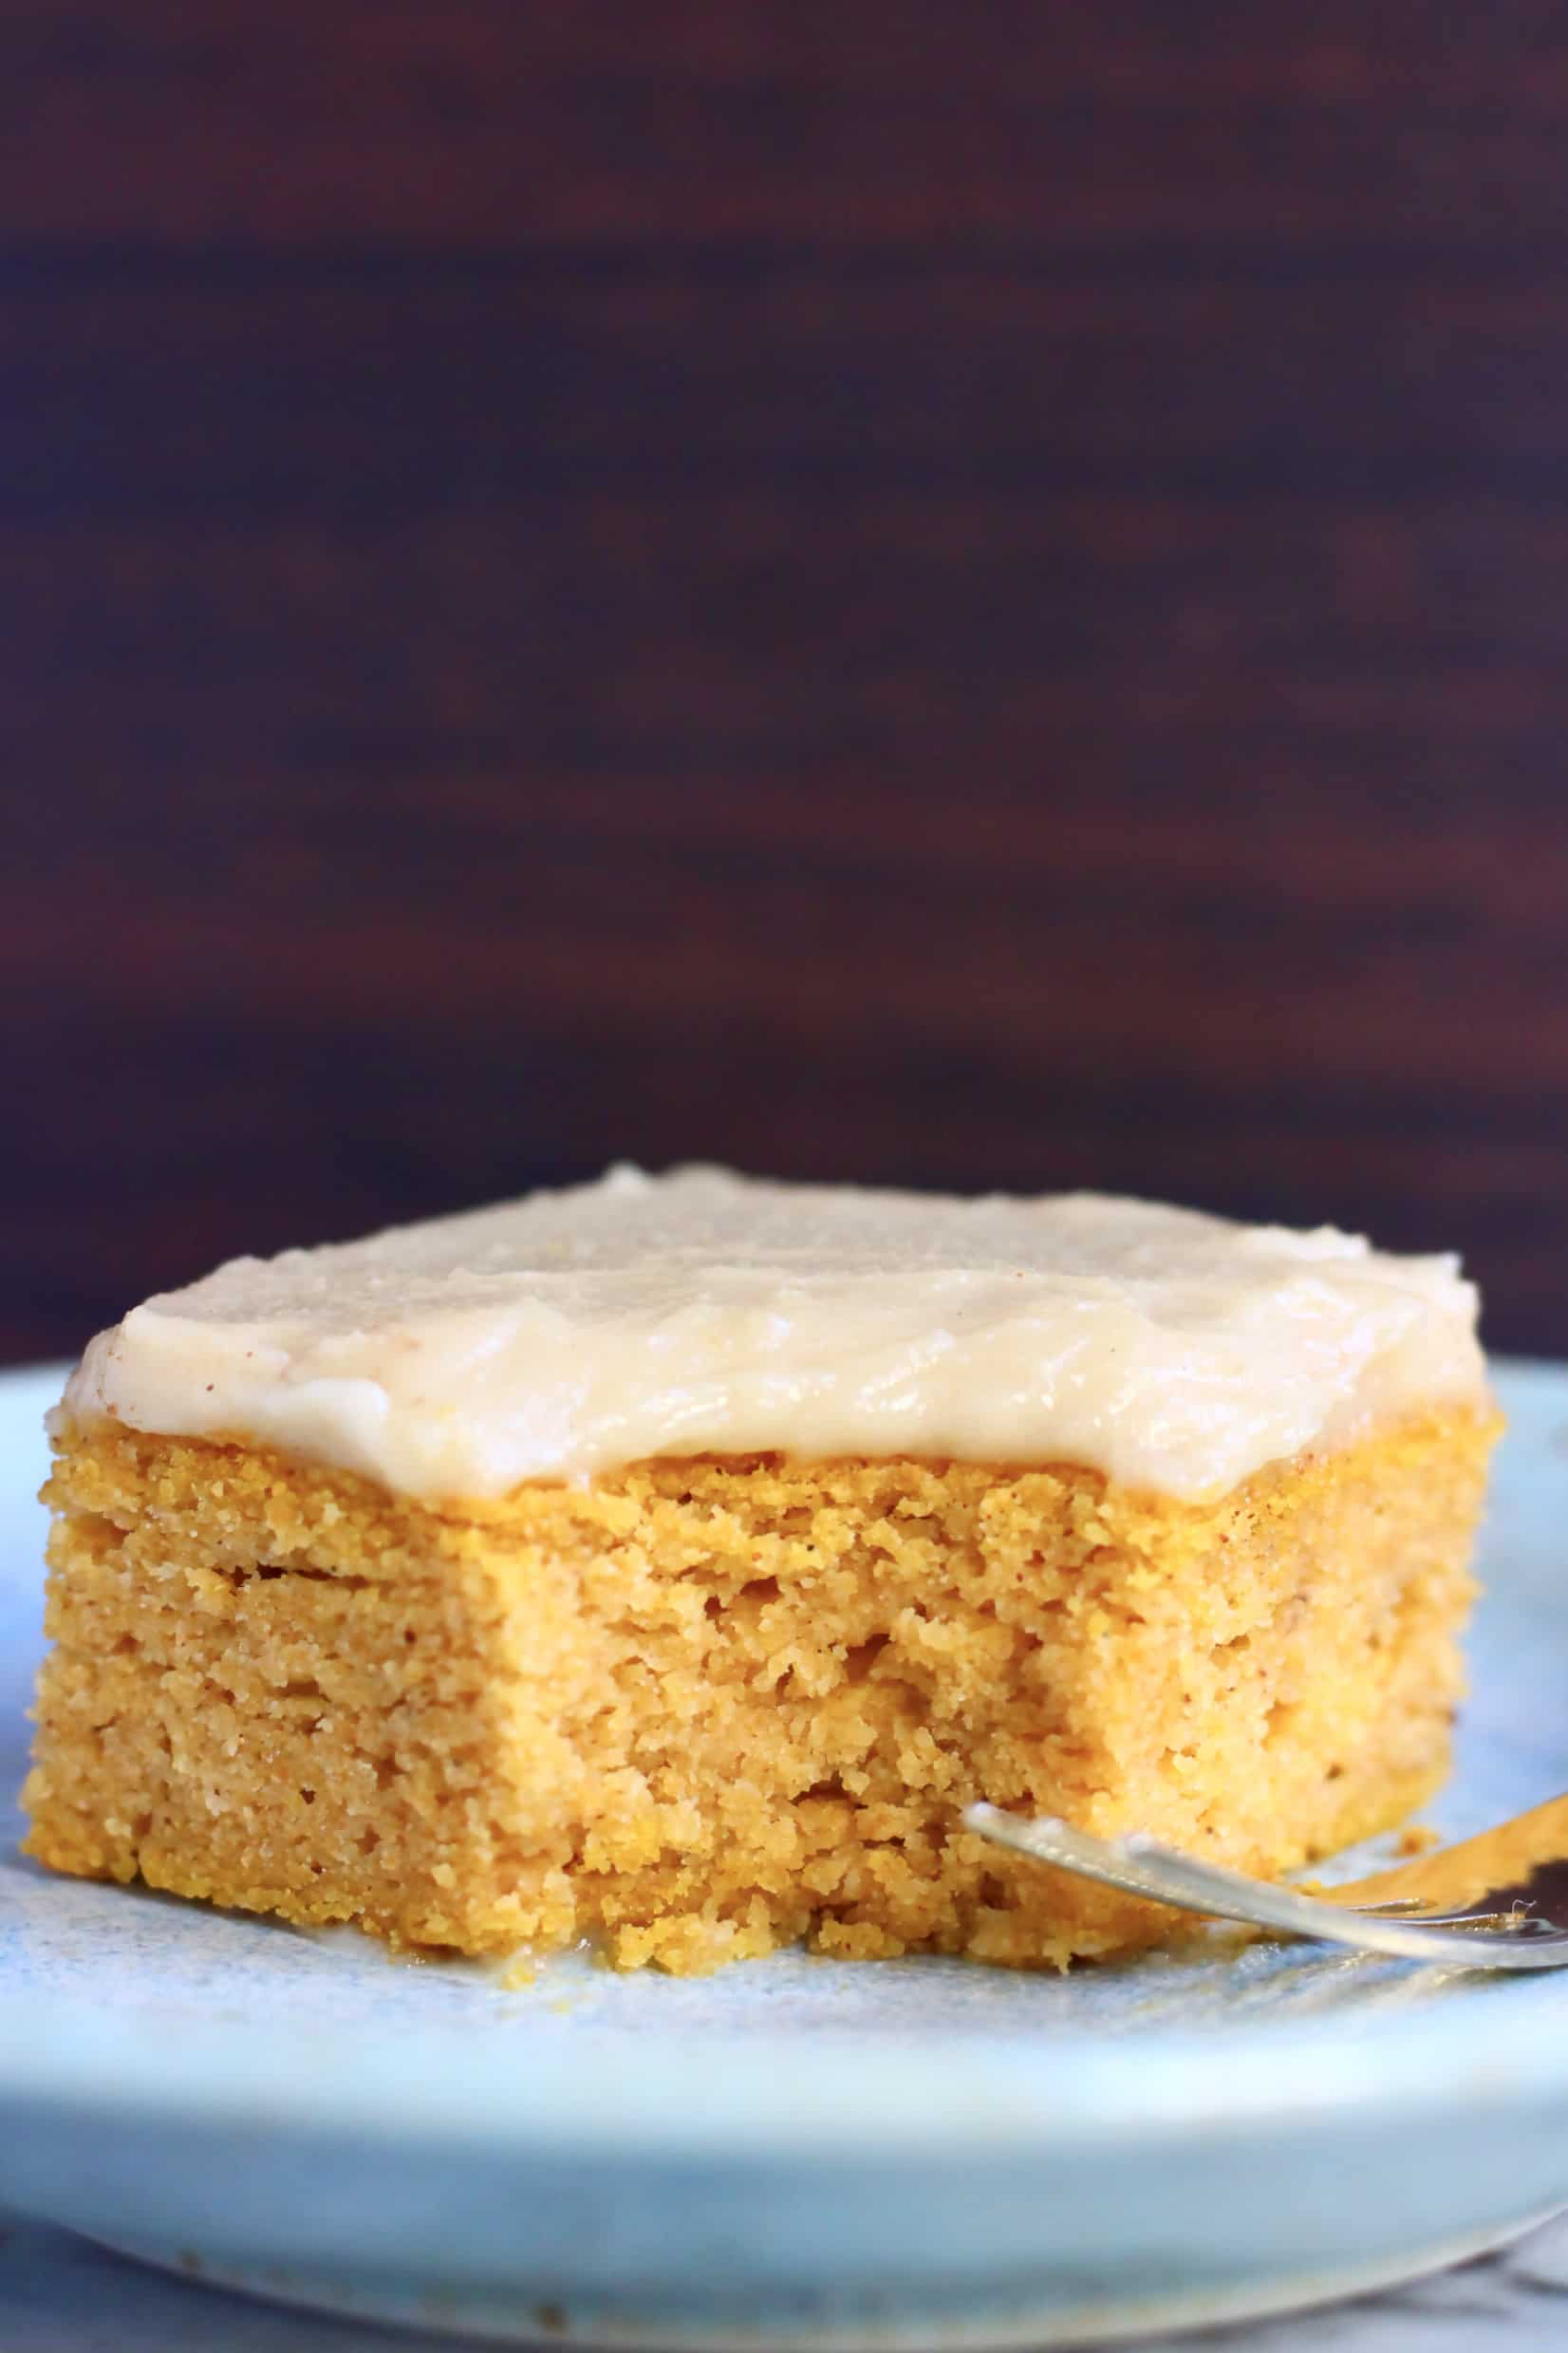 A square of gluten-free vegan pumpkin bars topped with frosting with a mouthful taken out of it on a  plate with a fork